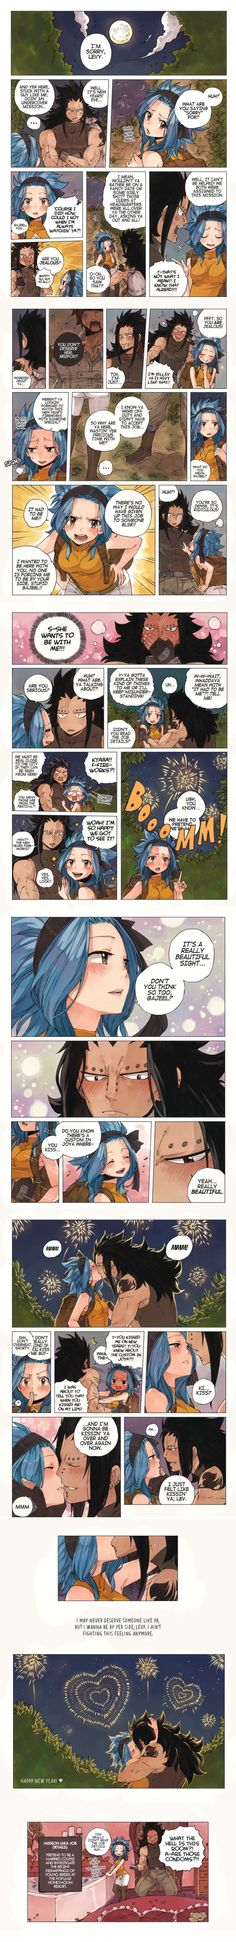 A New Year's Kiss: Gajeel and Levy [Fairy Tail] Gale Fairy Tail, Fairy Tail Ships, Fairy Tail Anime, Fairy Tales, Fairy Tail Family, Fairy Tail Couples, Gajeel Et Levy, New Year's Kiss, Fairy Tail Comics